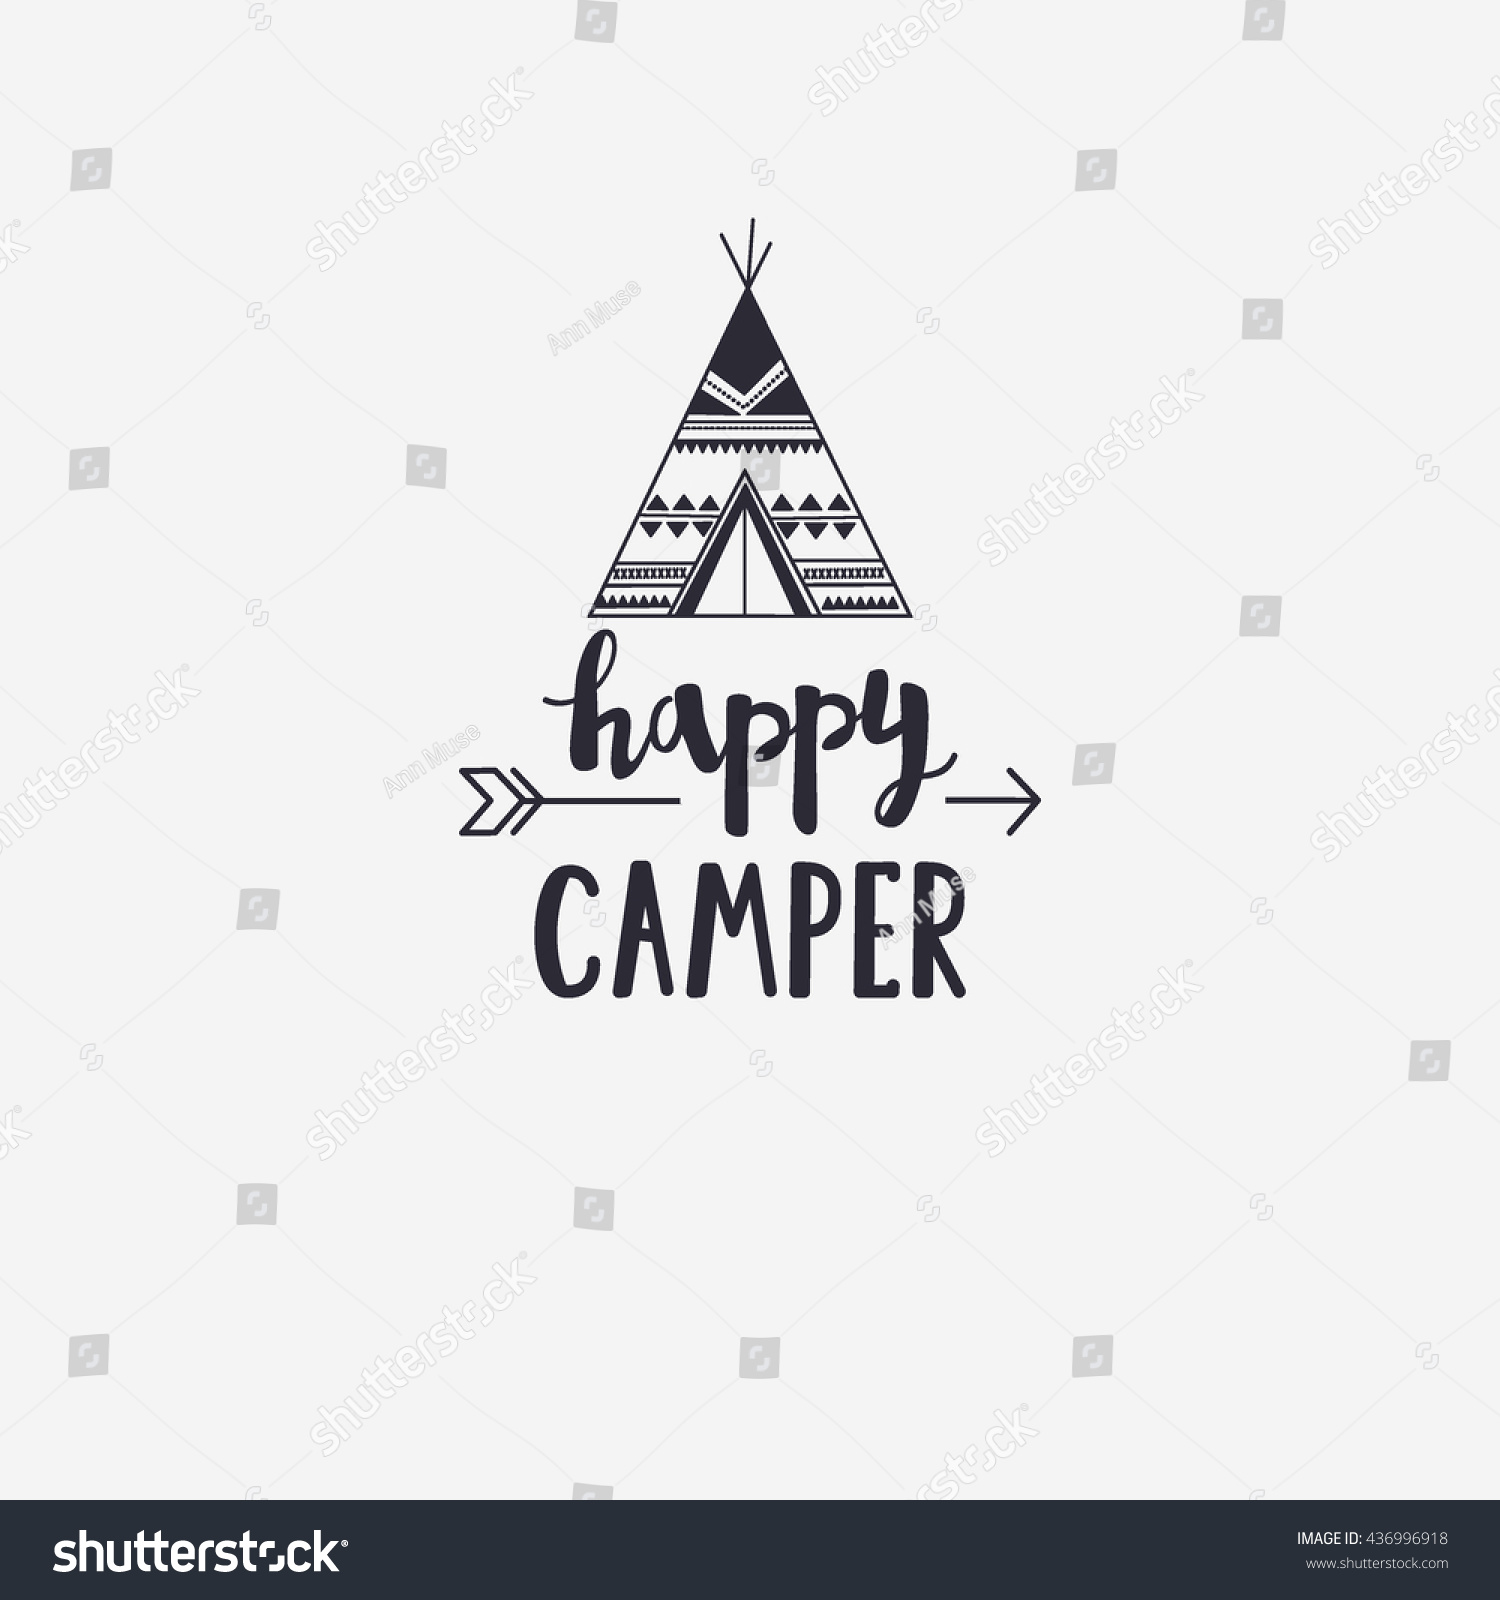 Vector Illustration Happy CAMPER Lettering With Teepee And Arrow Outdoor Logo Emblem